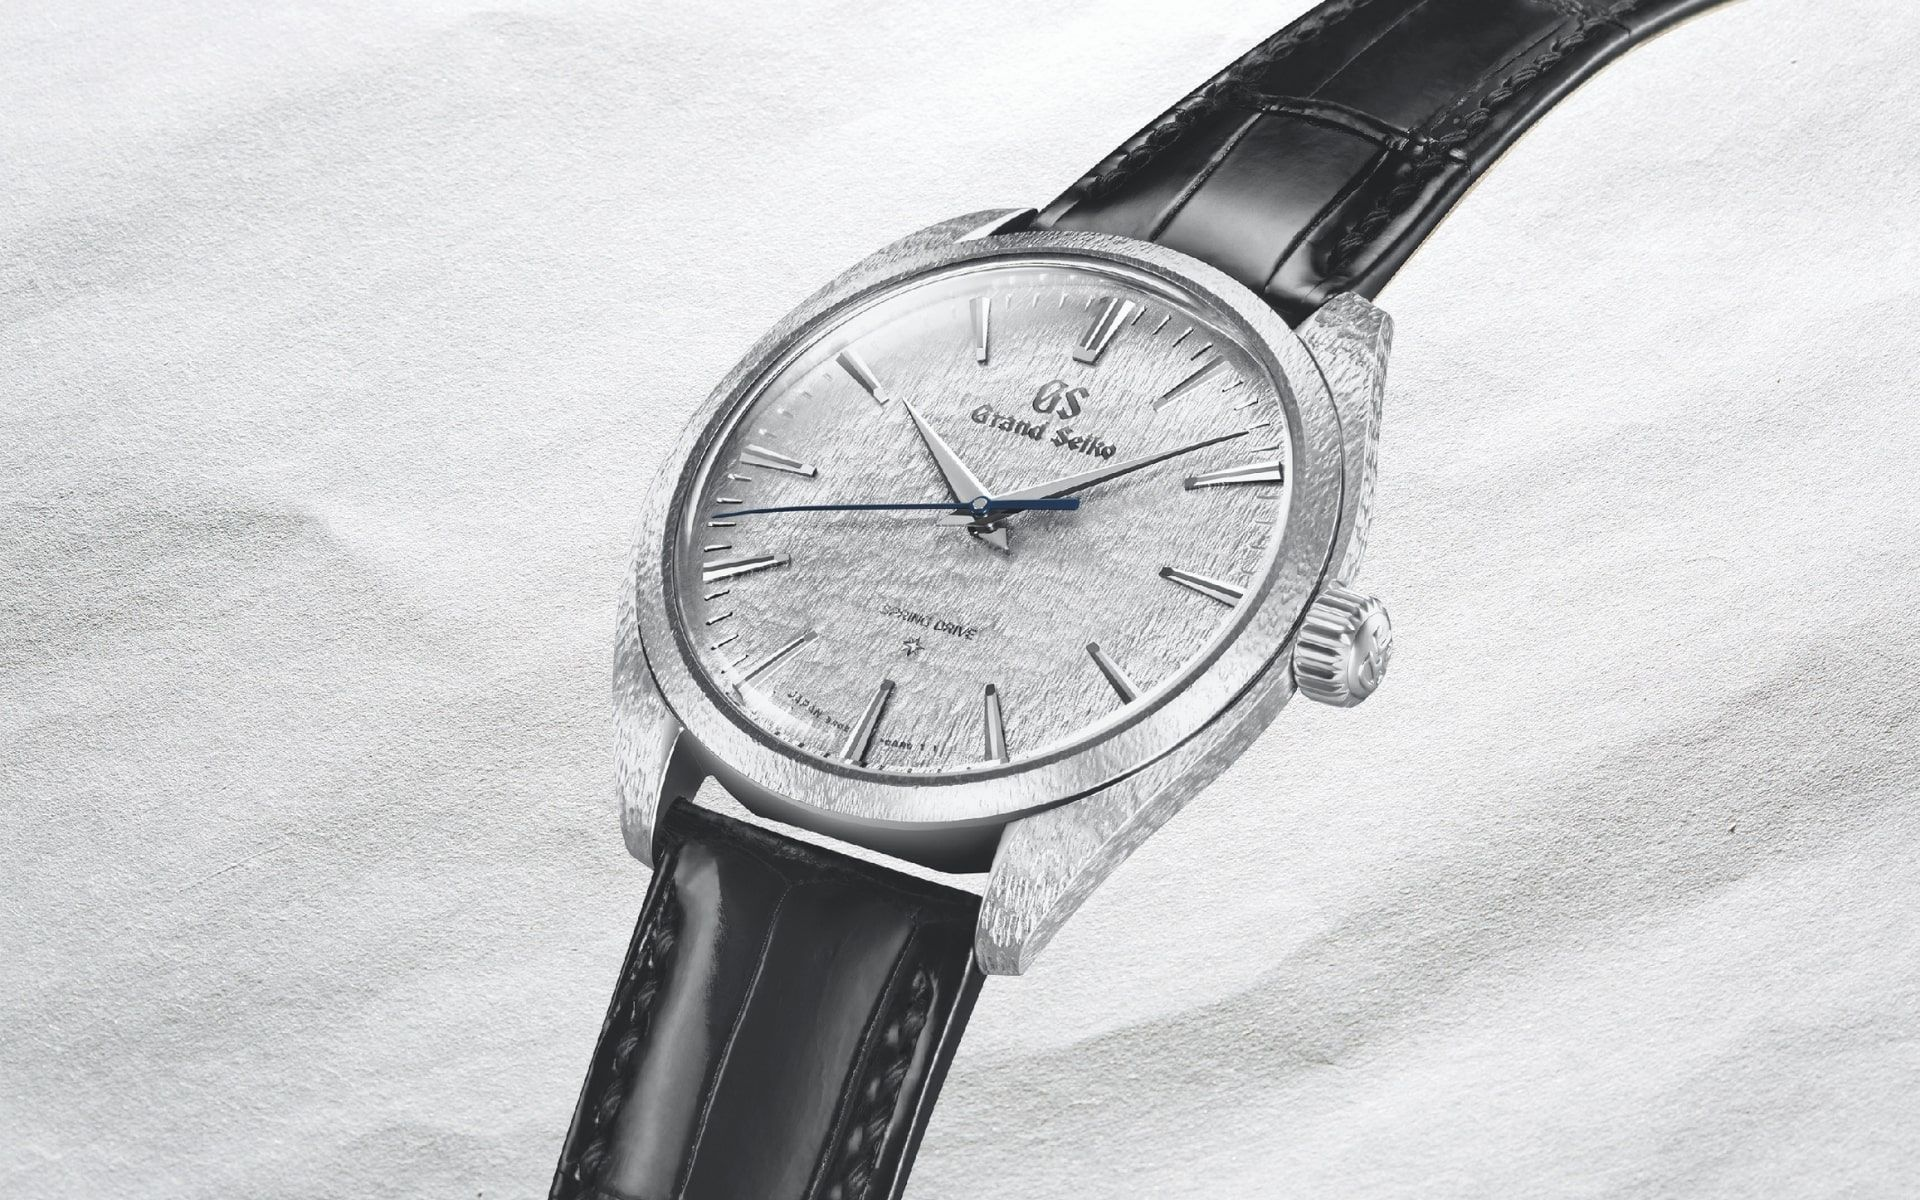 Grand Seiko Elegance with decorative case and dial